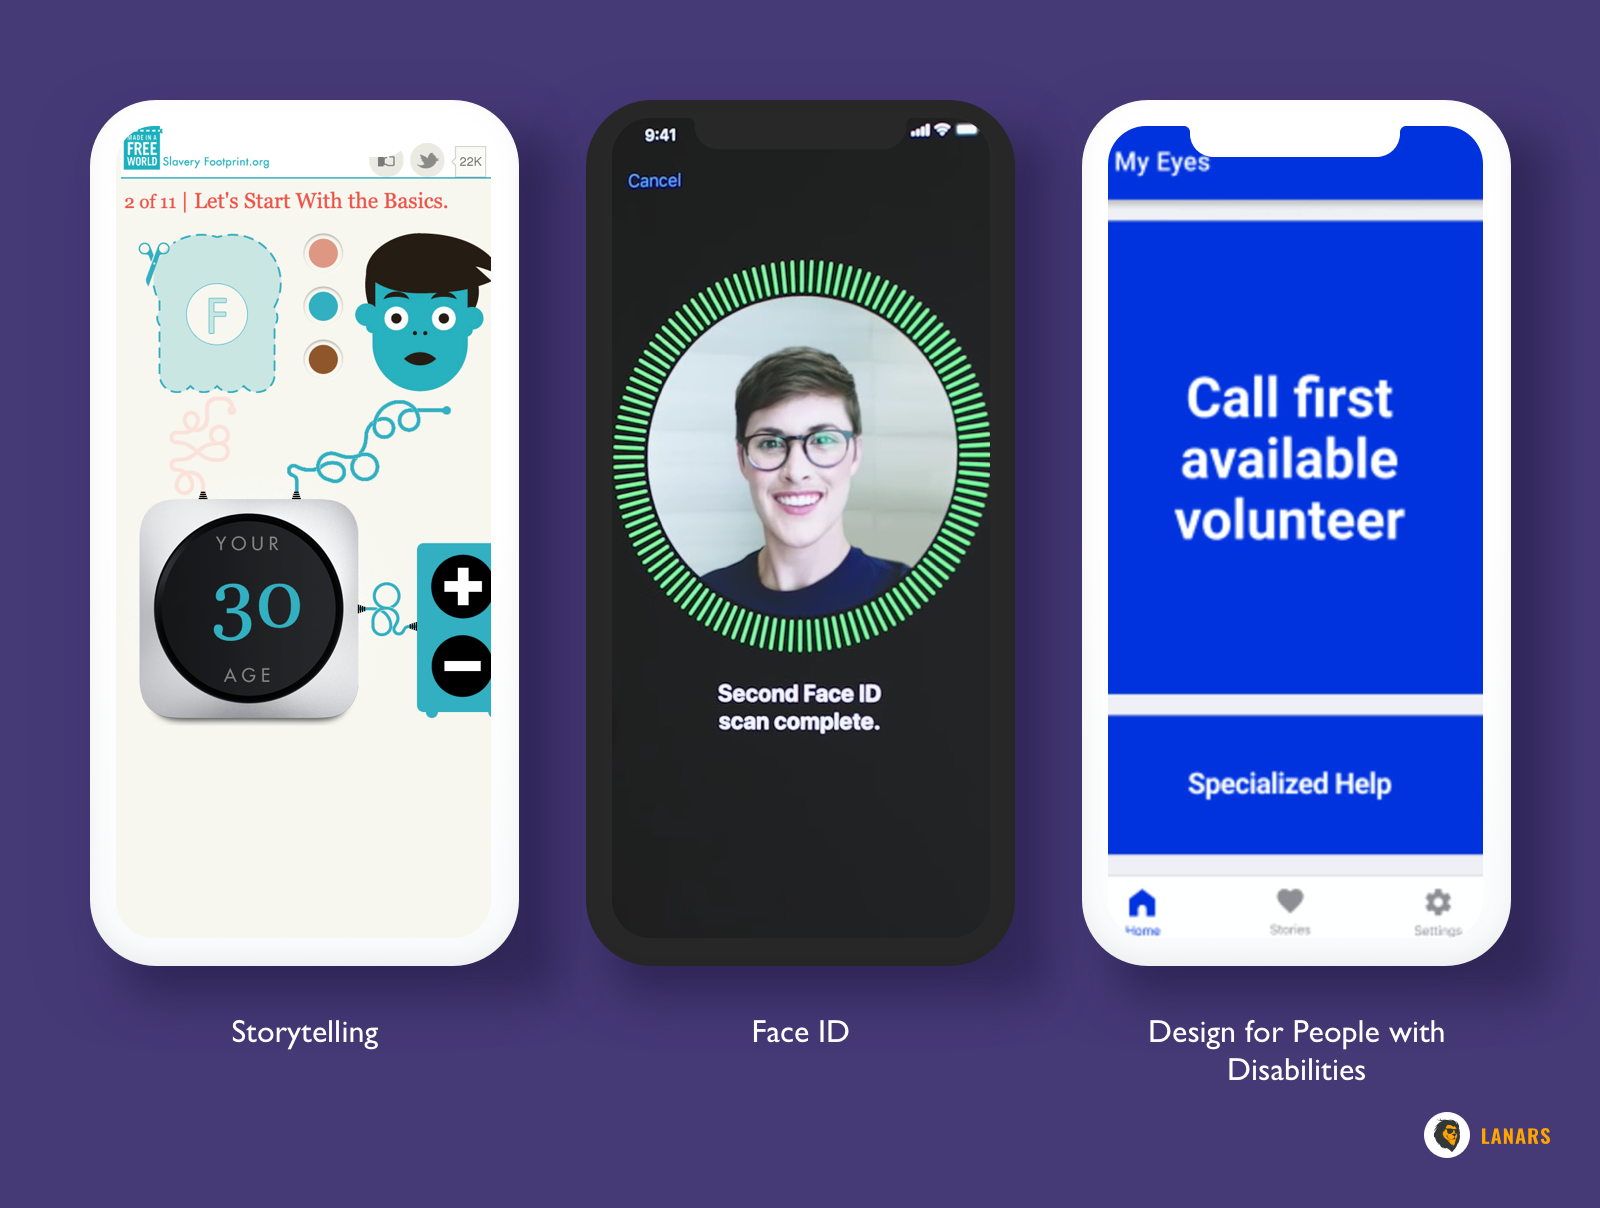 UI and UX Design for People with Disabilities,Storytelling,Face ID